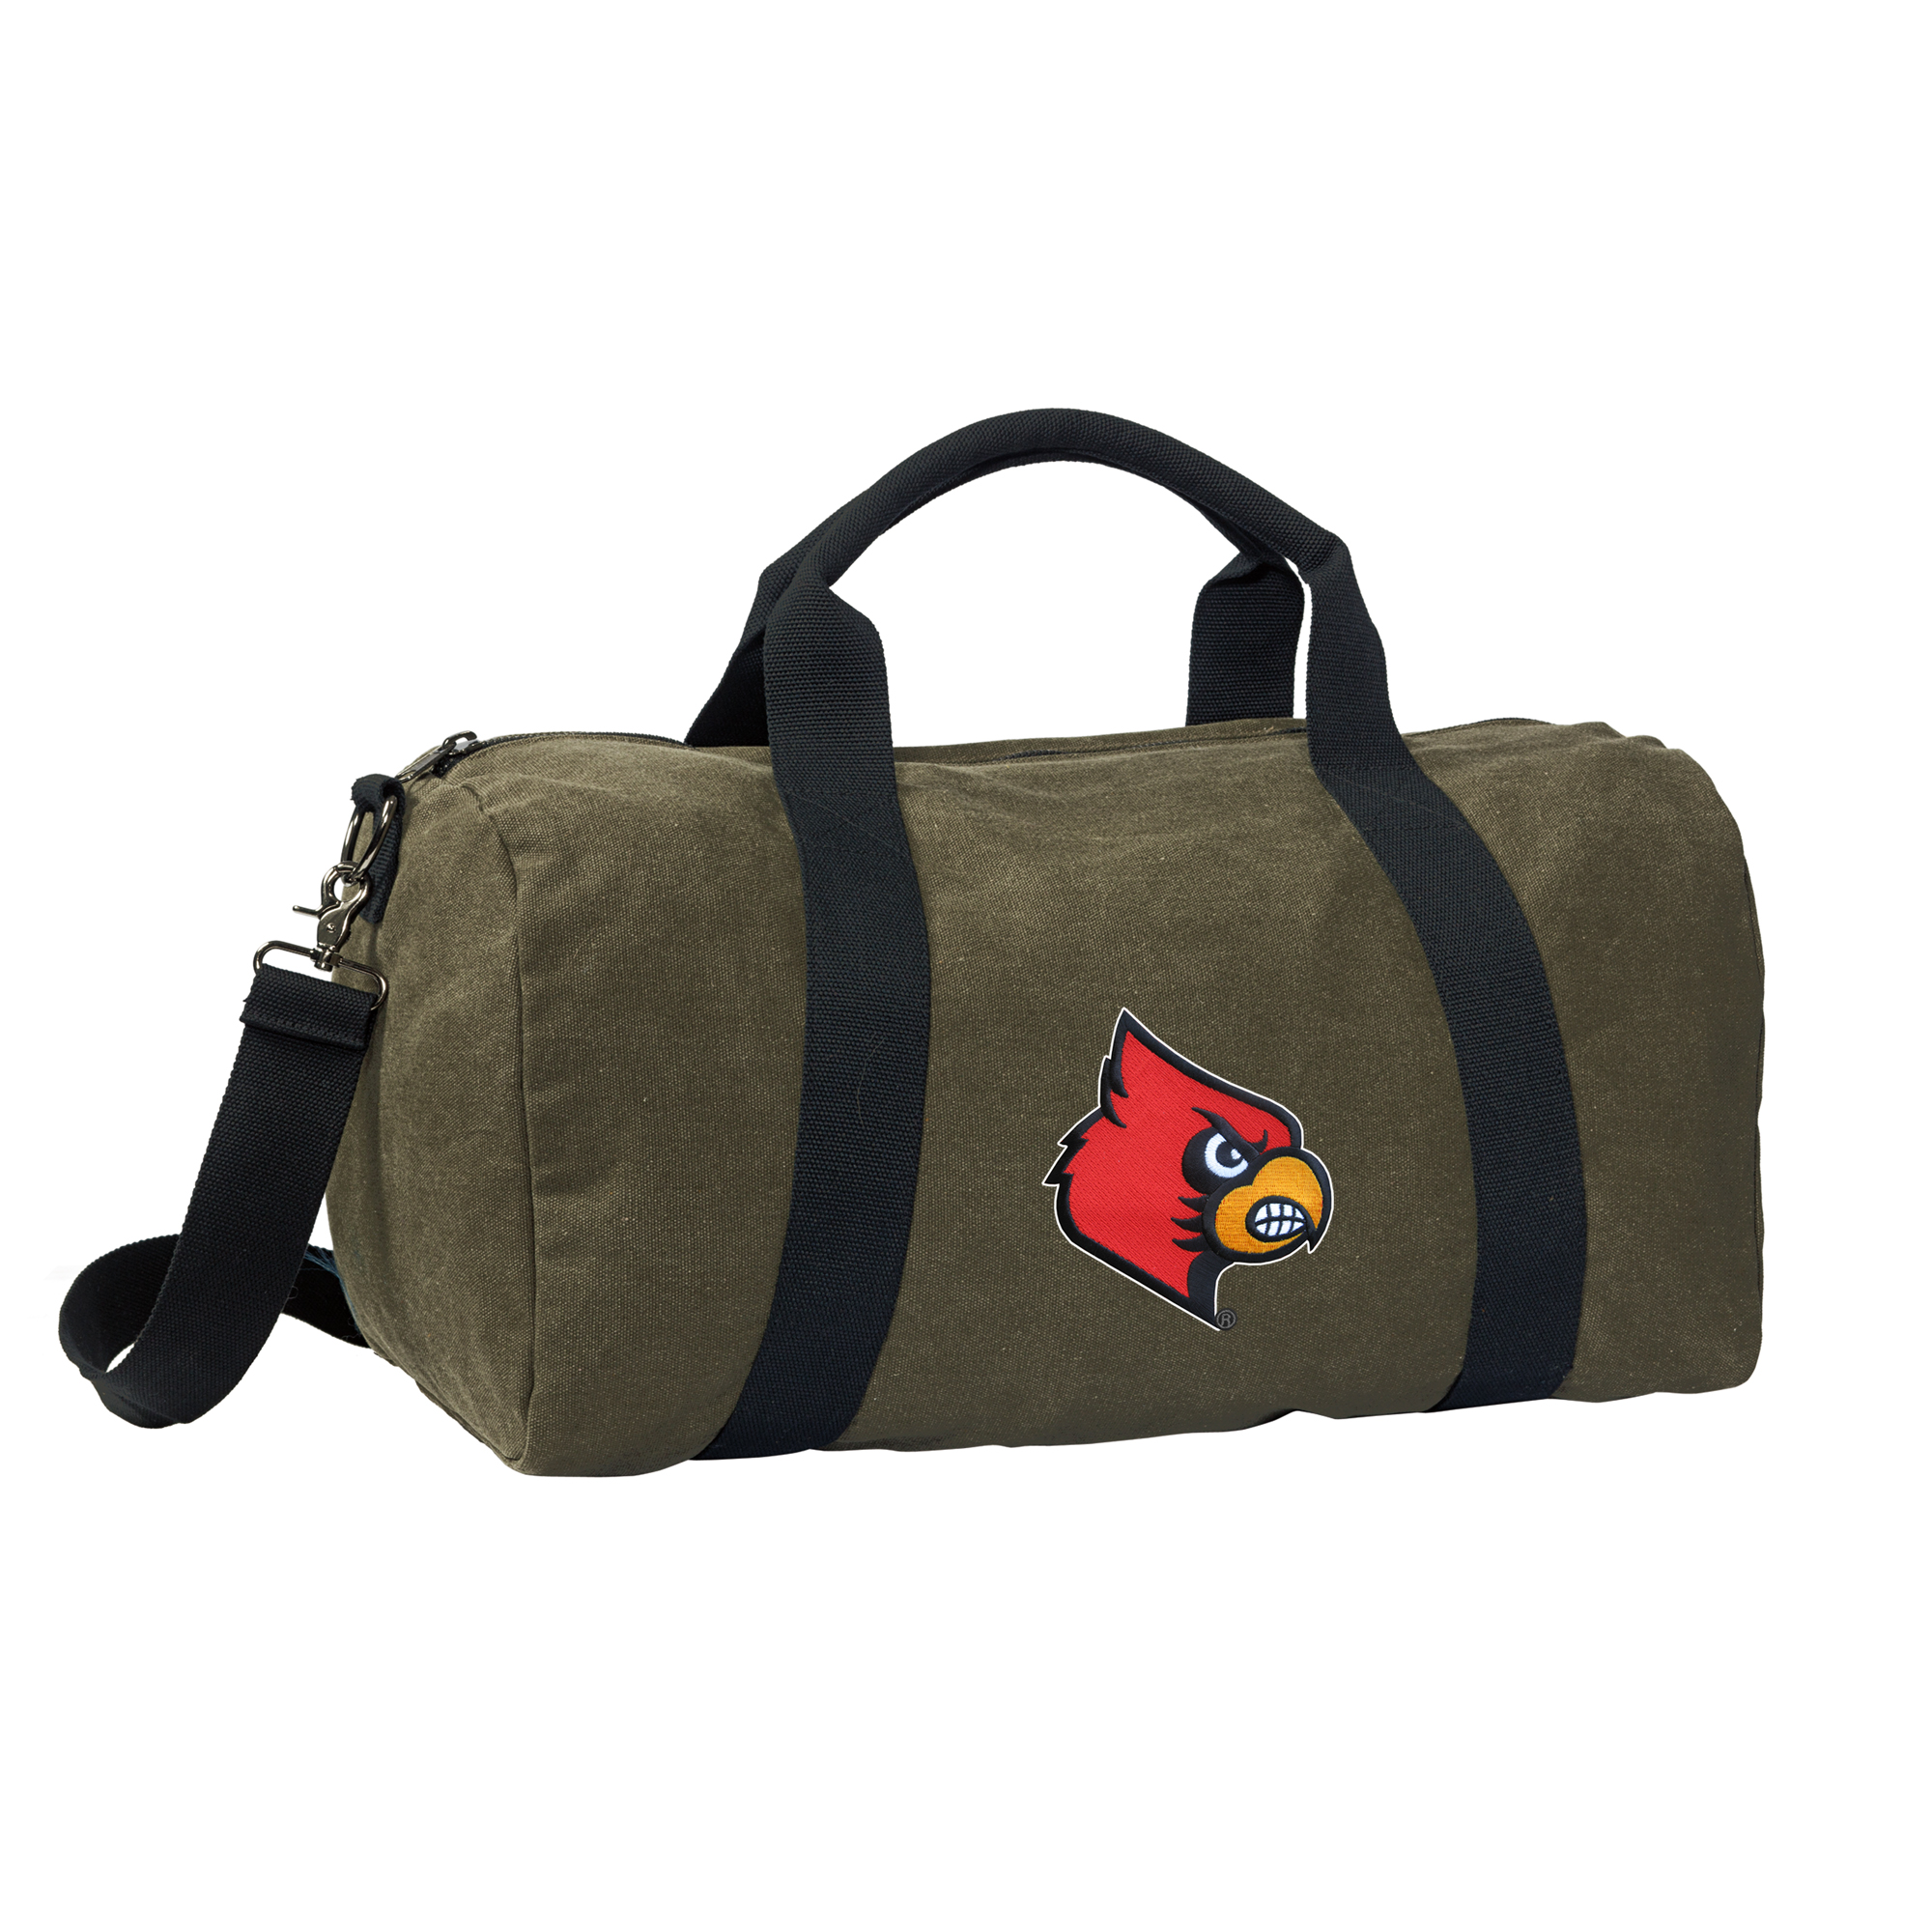 Louisville Duffle Bag CANVAS University of Louisville Luggage Bag by